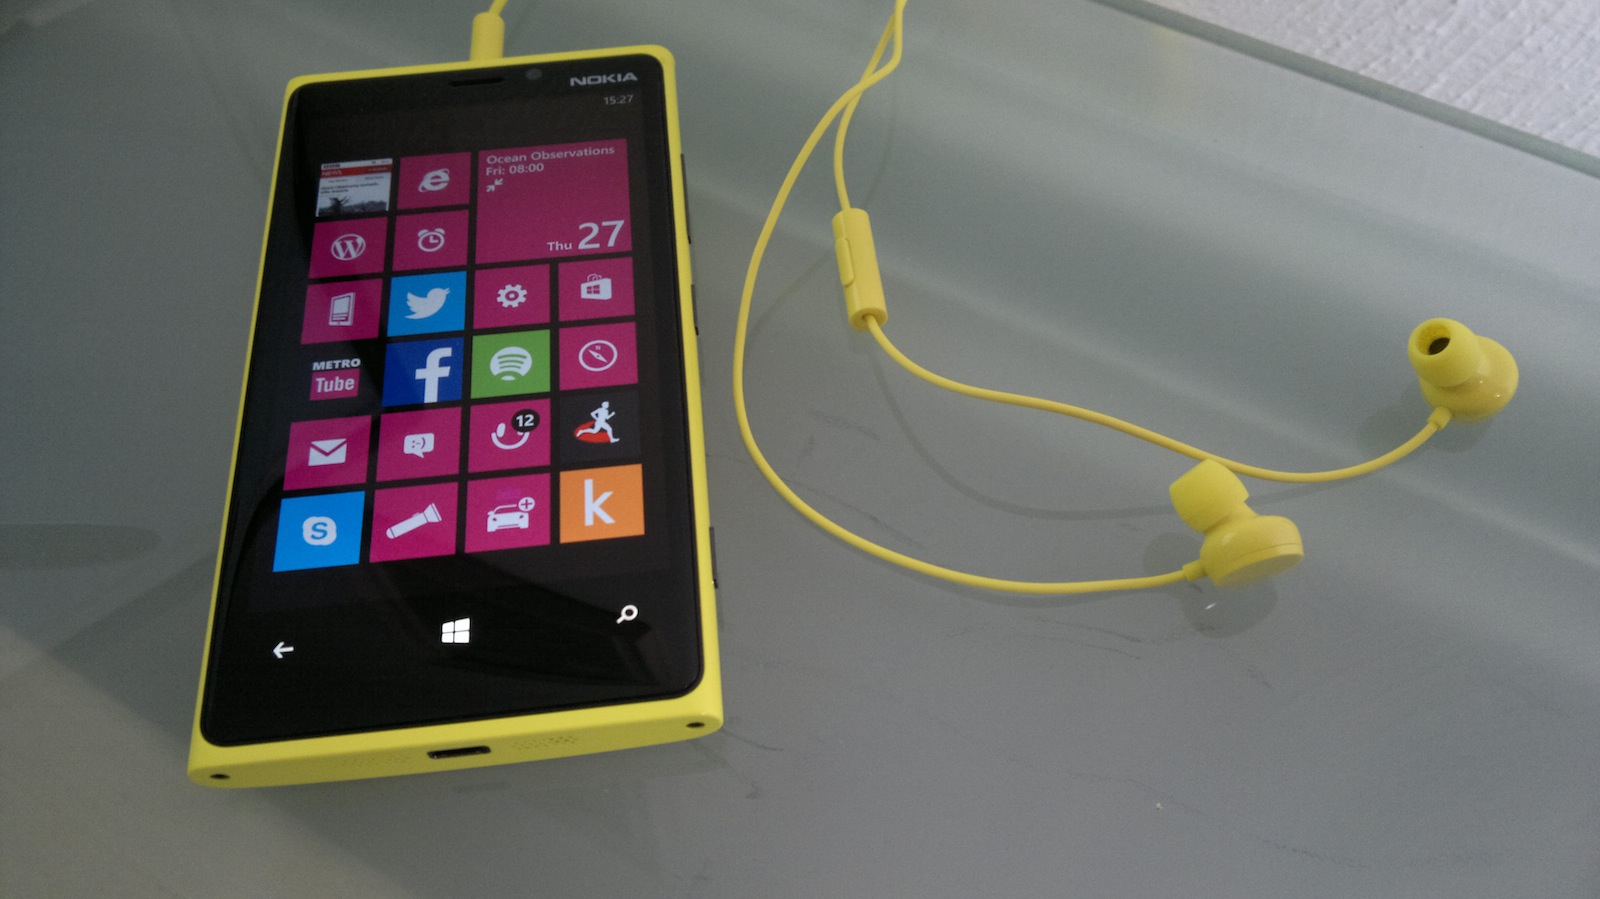 Nokia Lumia 920 with yellow headphones